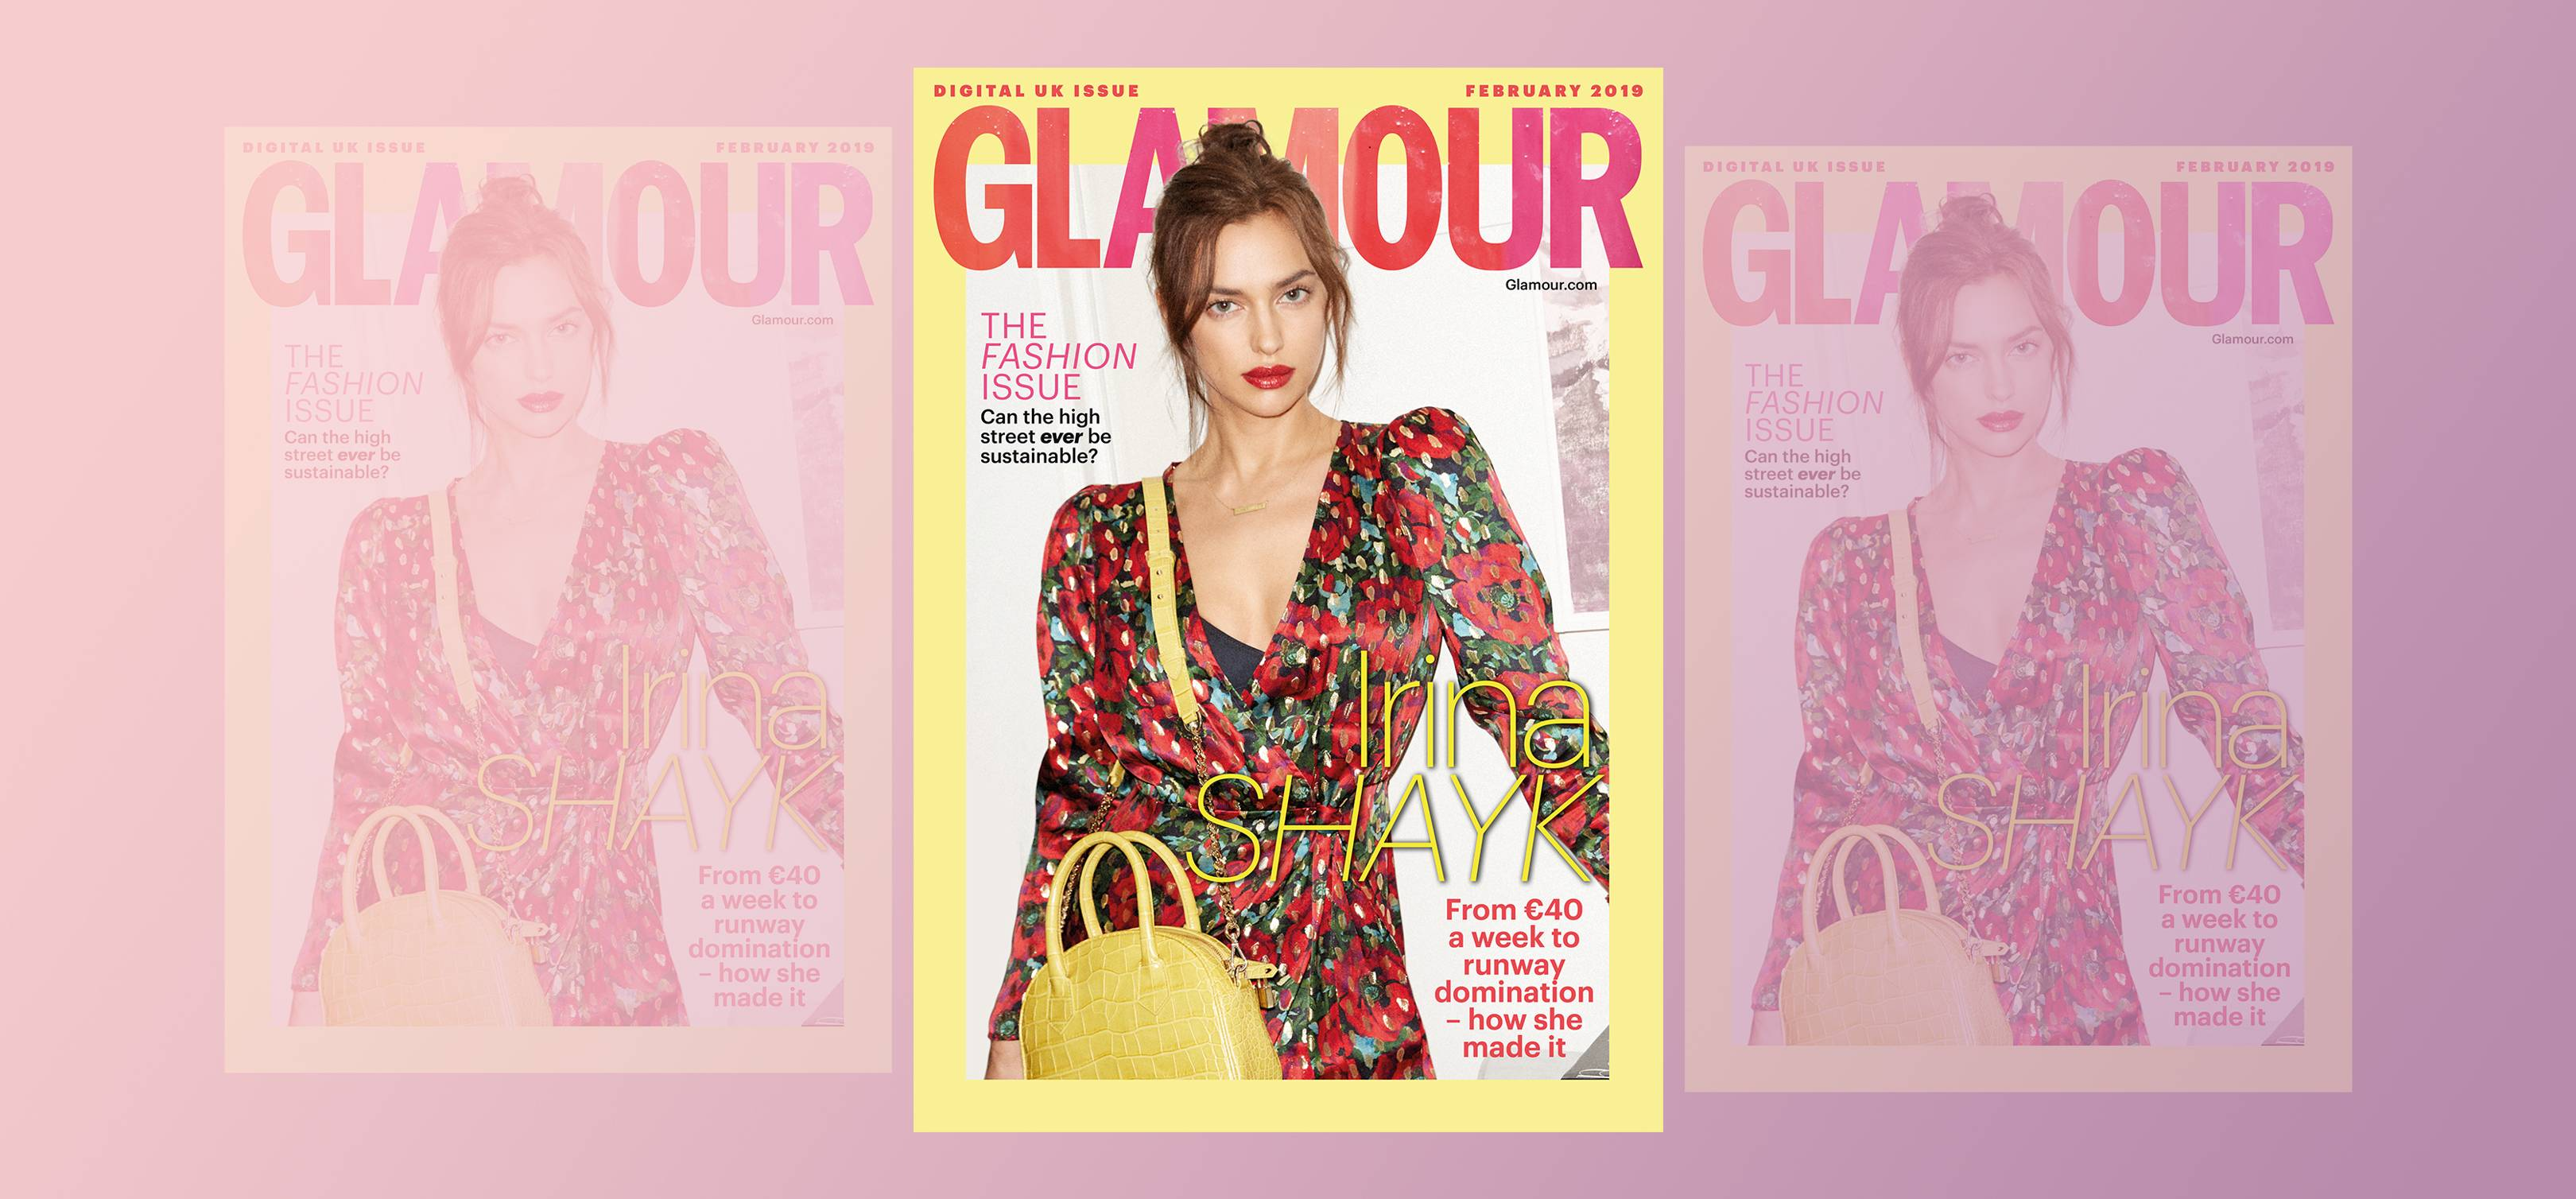 c4cc2f5ab From €40 a week to runway domination: Meet GLAMOUR's February digital cover  star, Irina Shayk